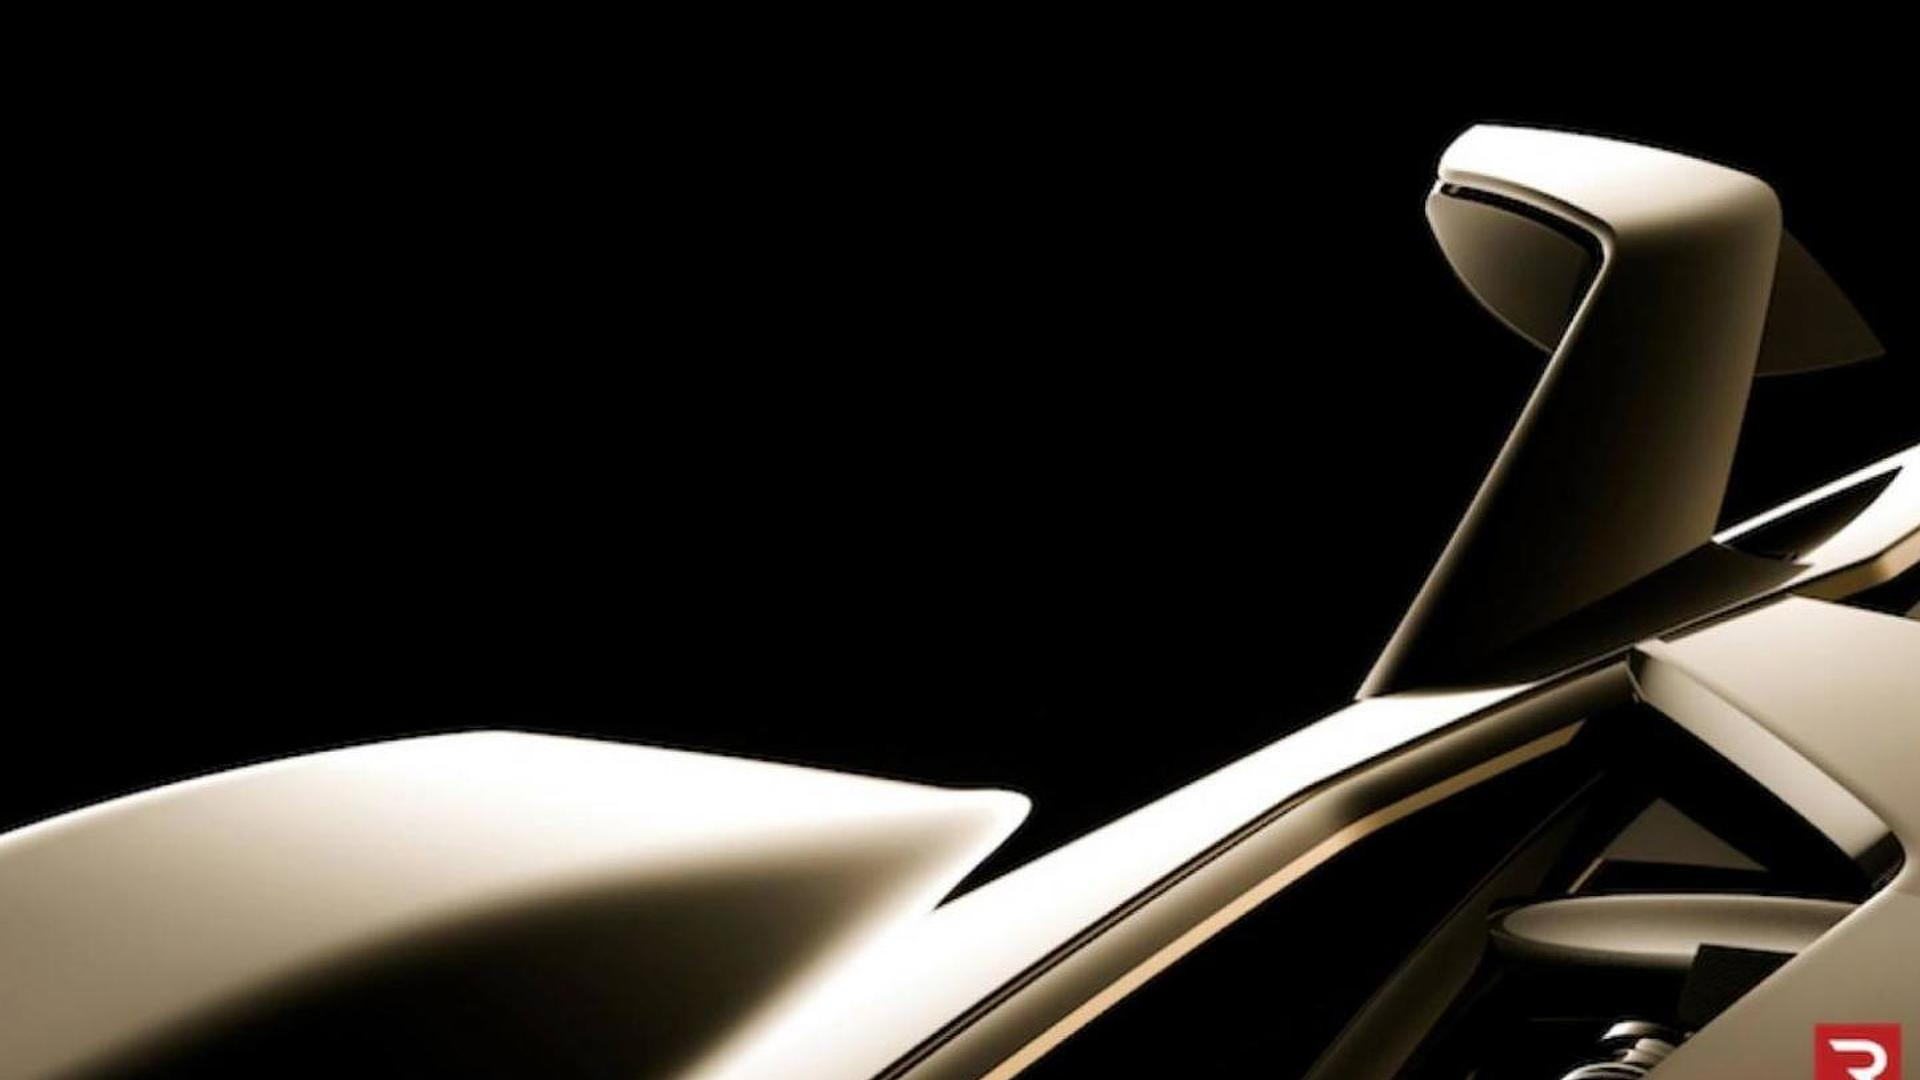 Rezvani Motors teases the Beast, promises to leave other supercars in the dust